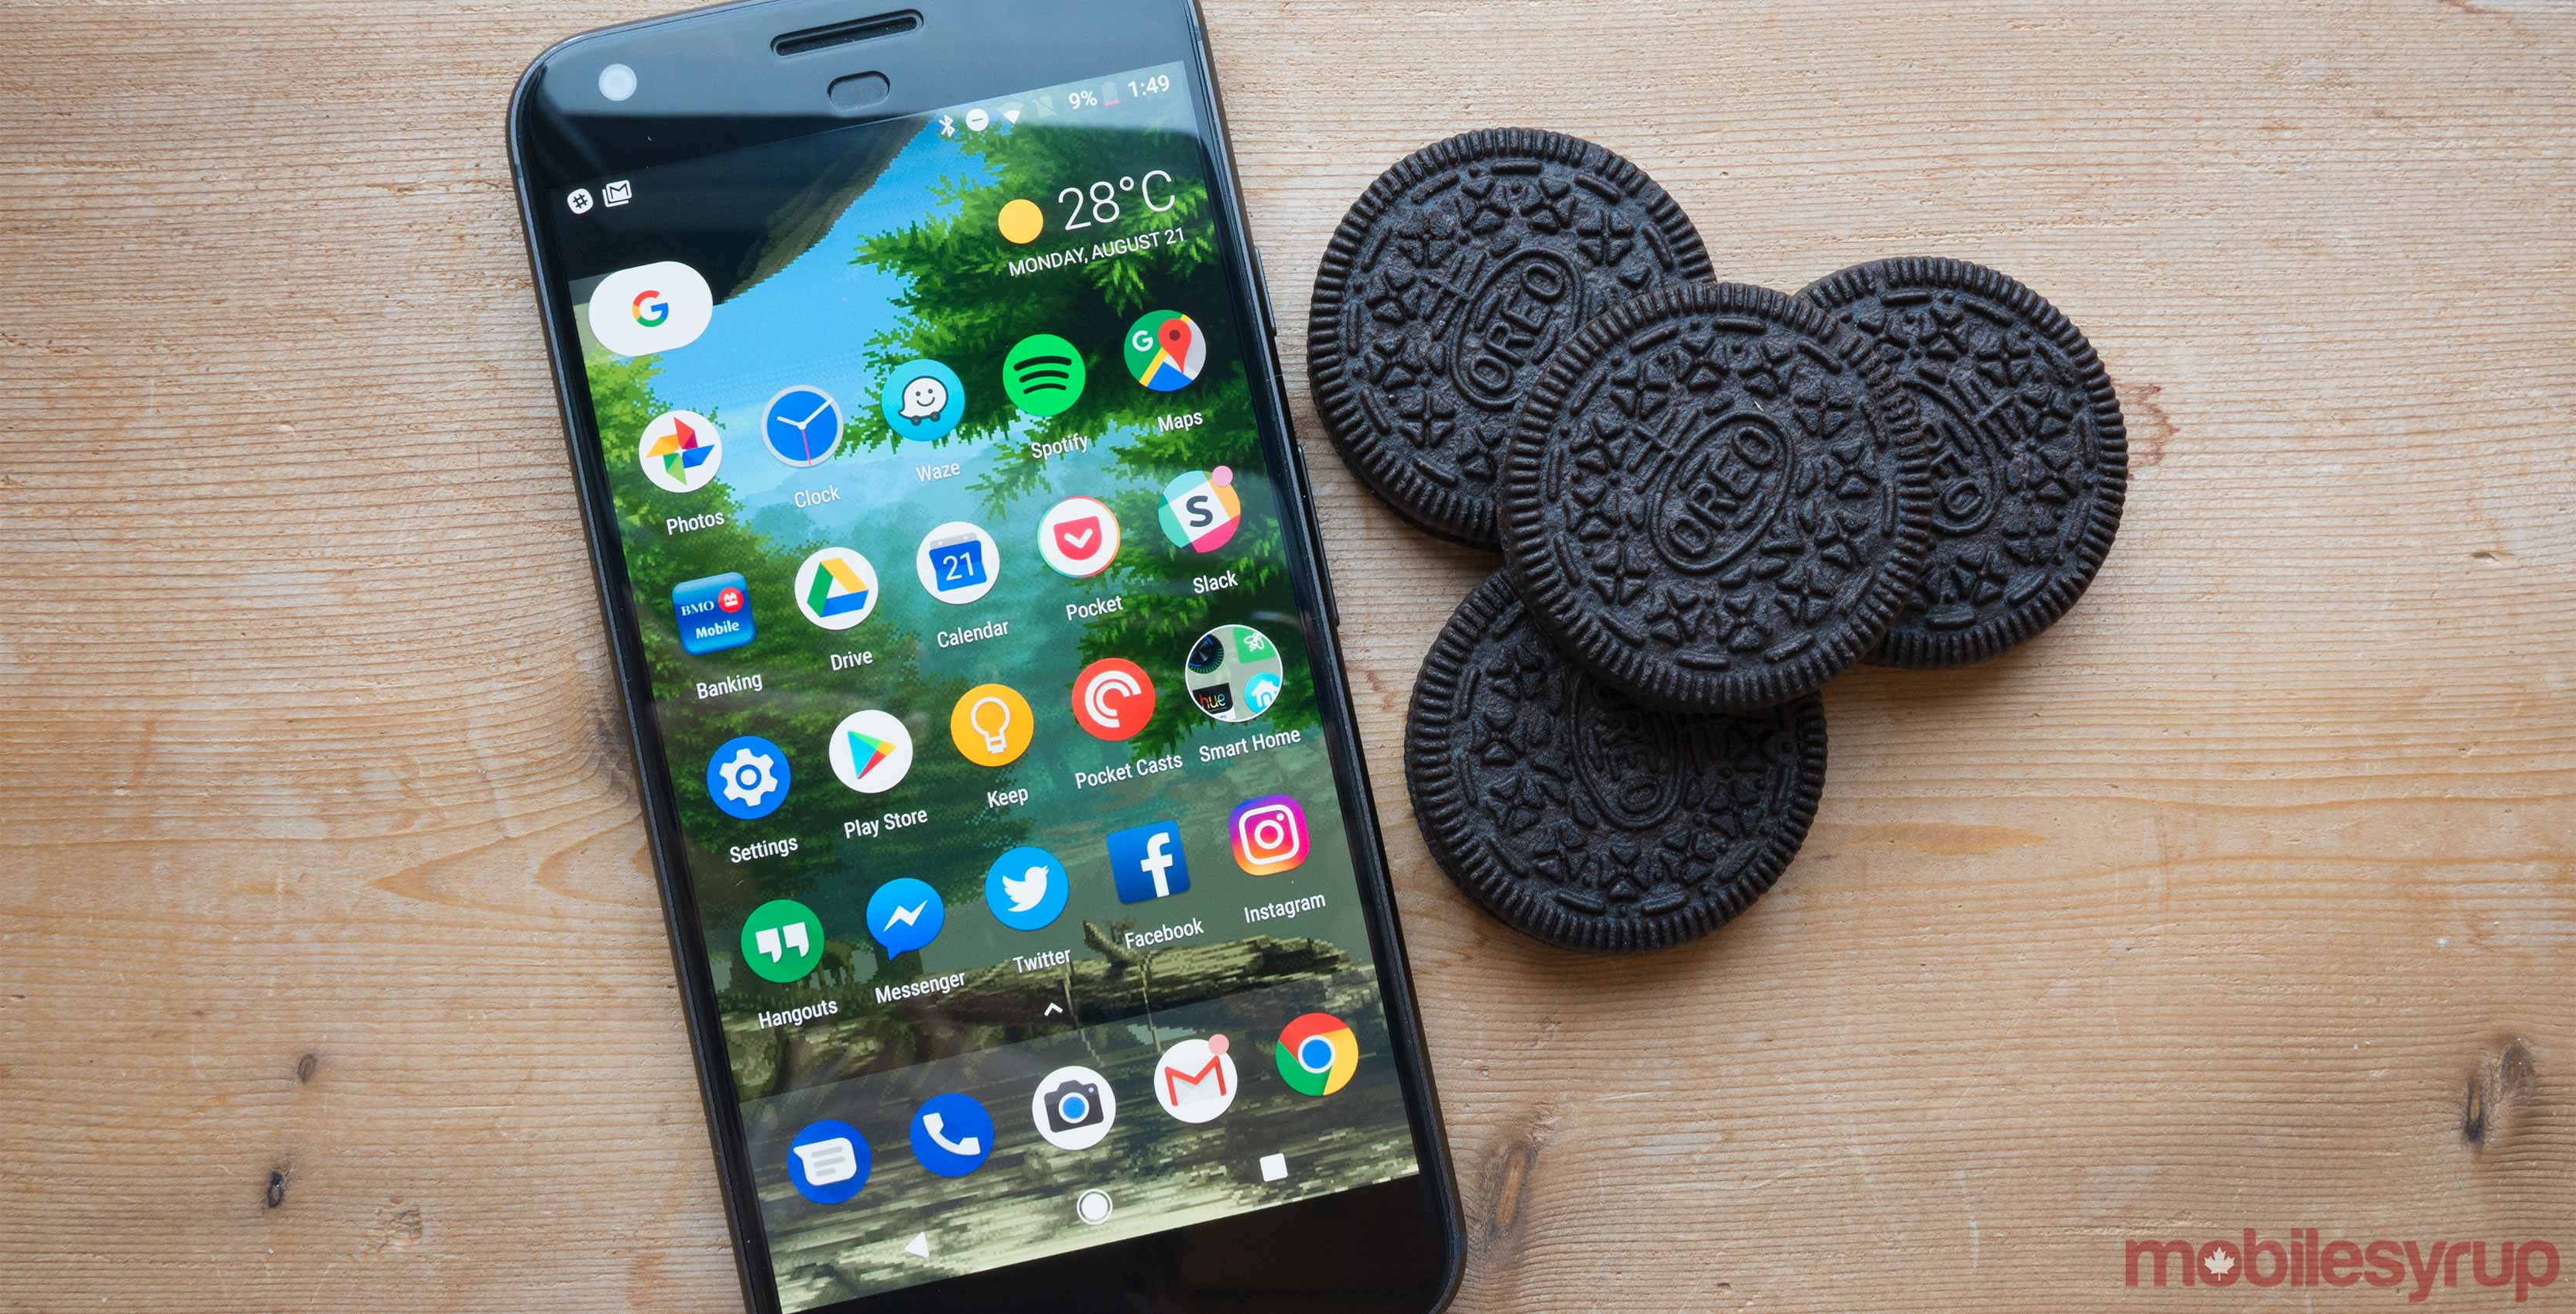 Android 8.0 Oreo is official, starts rollout out to devices ars_ab.settitle(1141655)